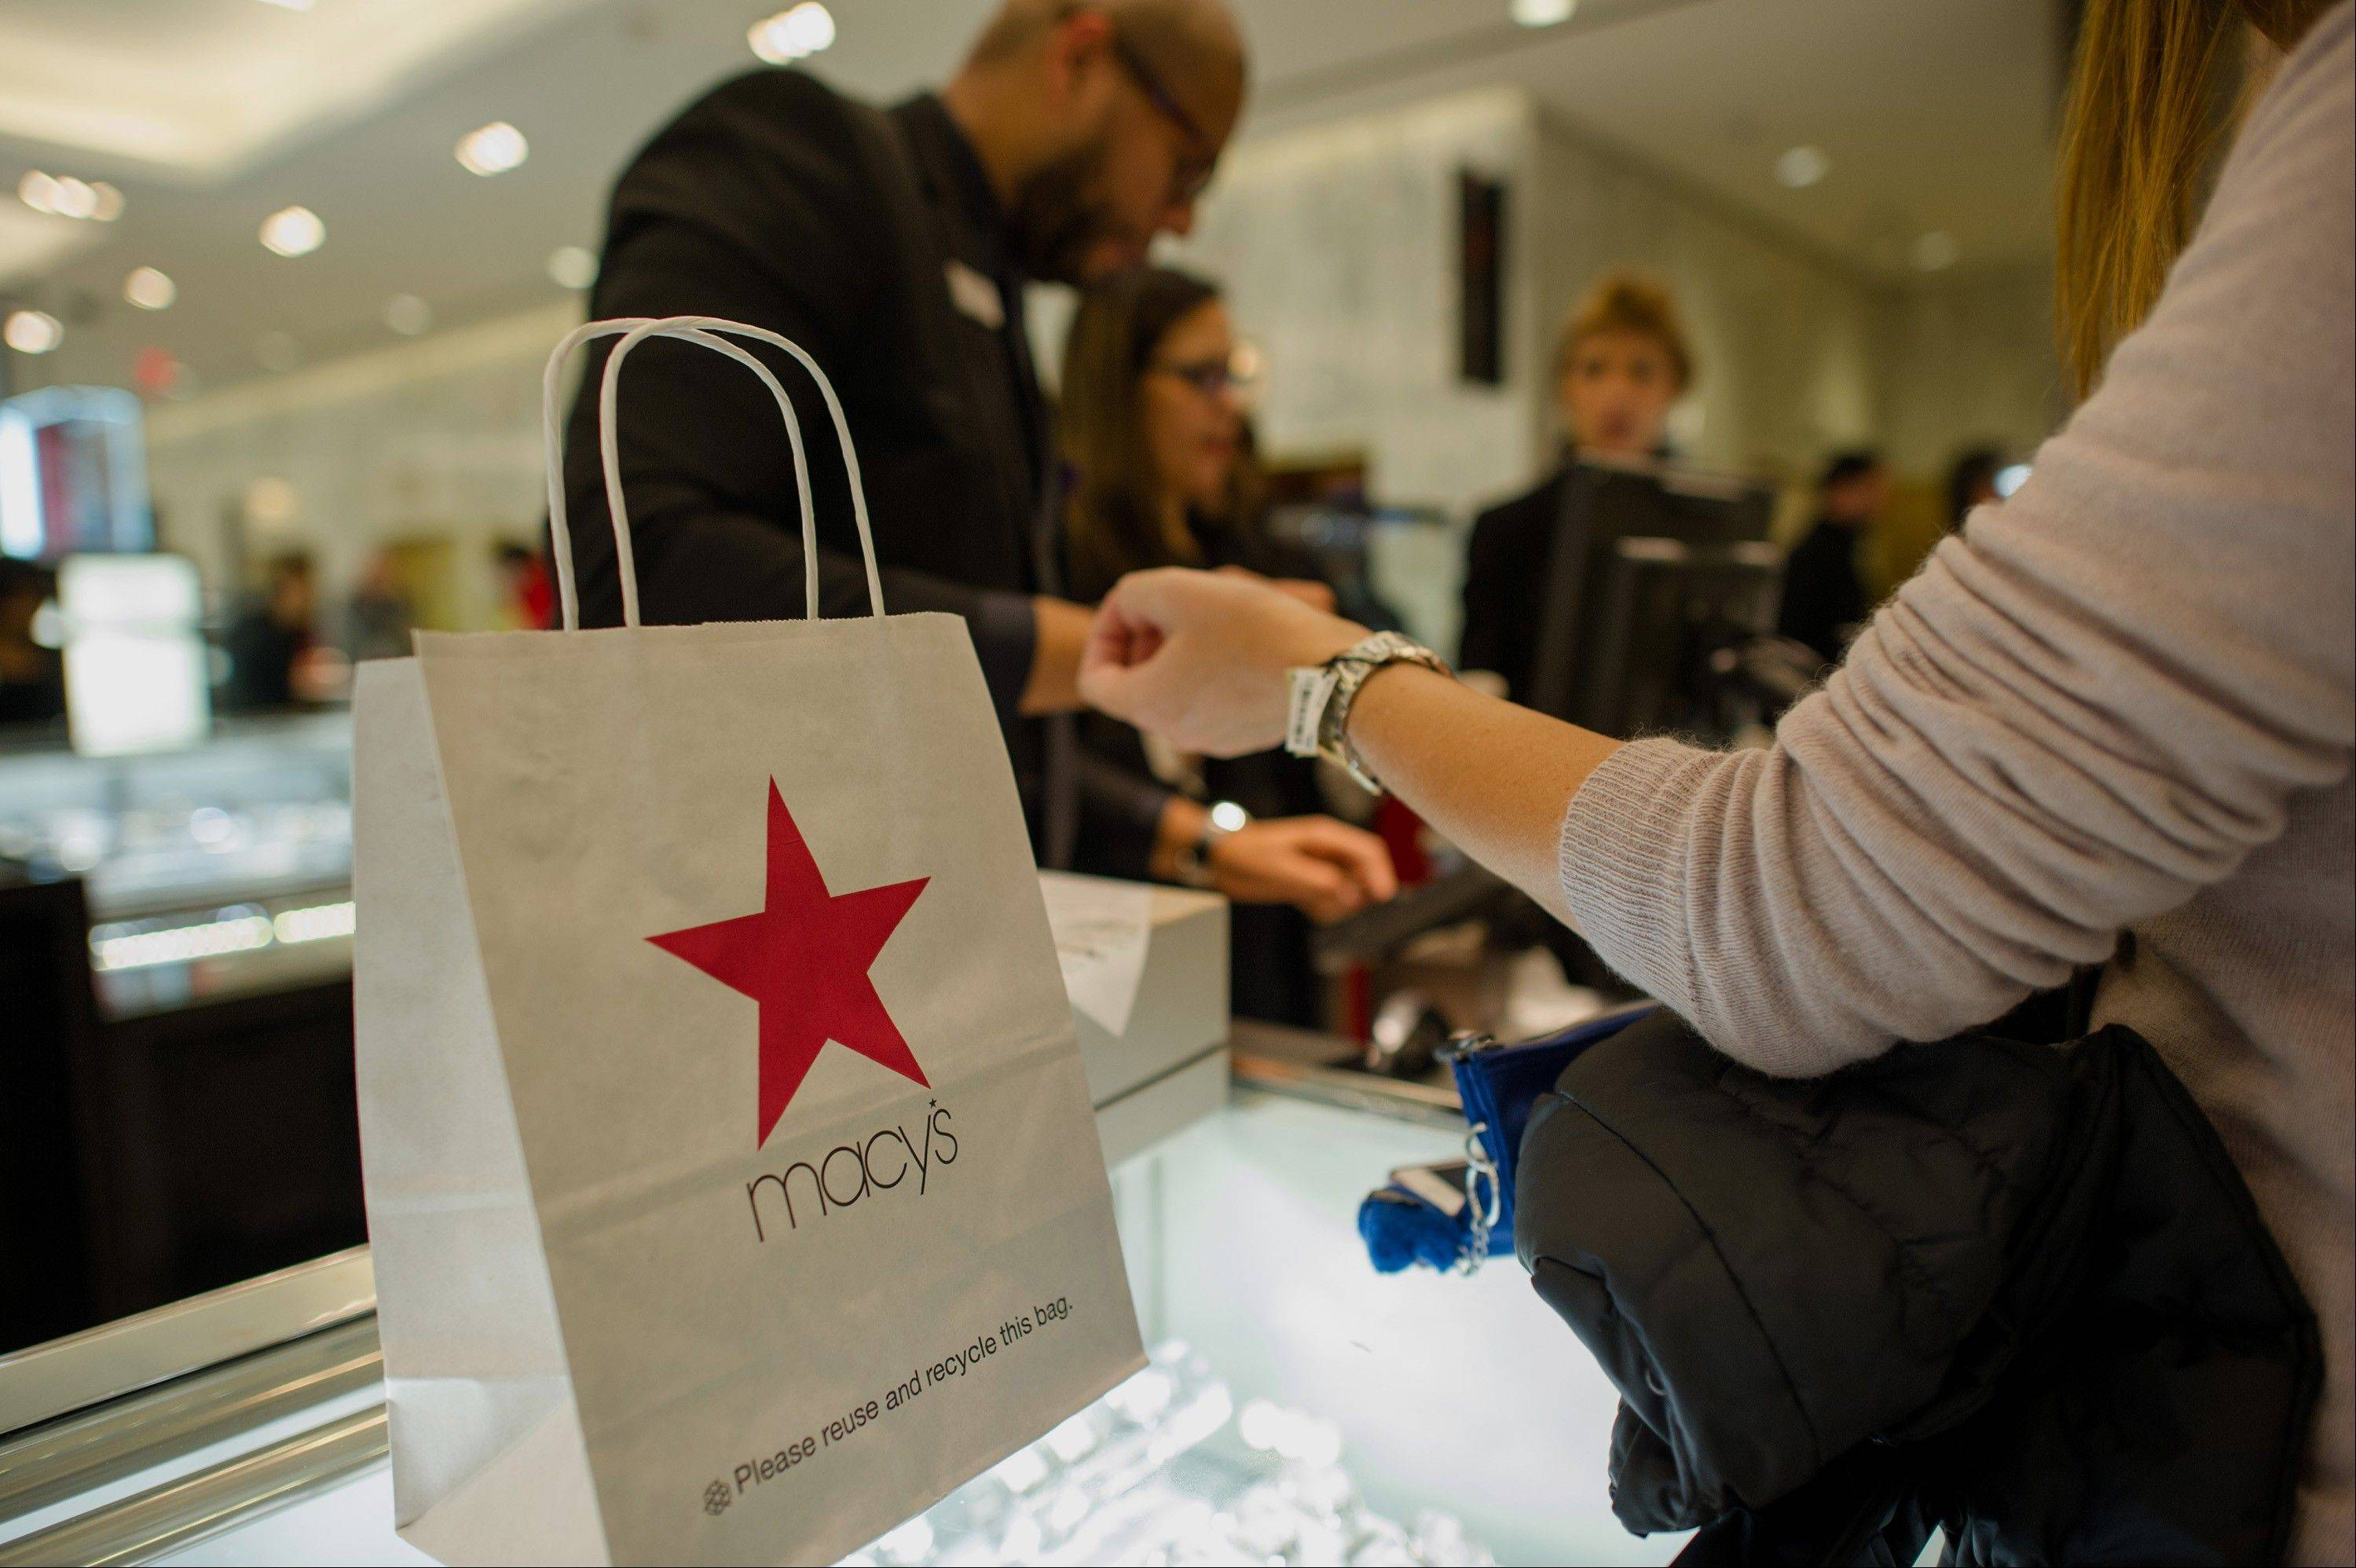 Macy's, Martha Stewart Living reach settlement